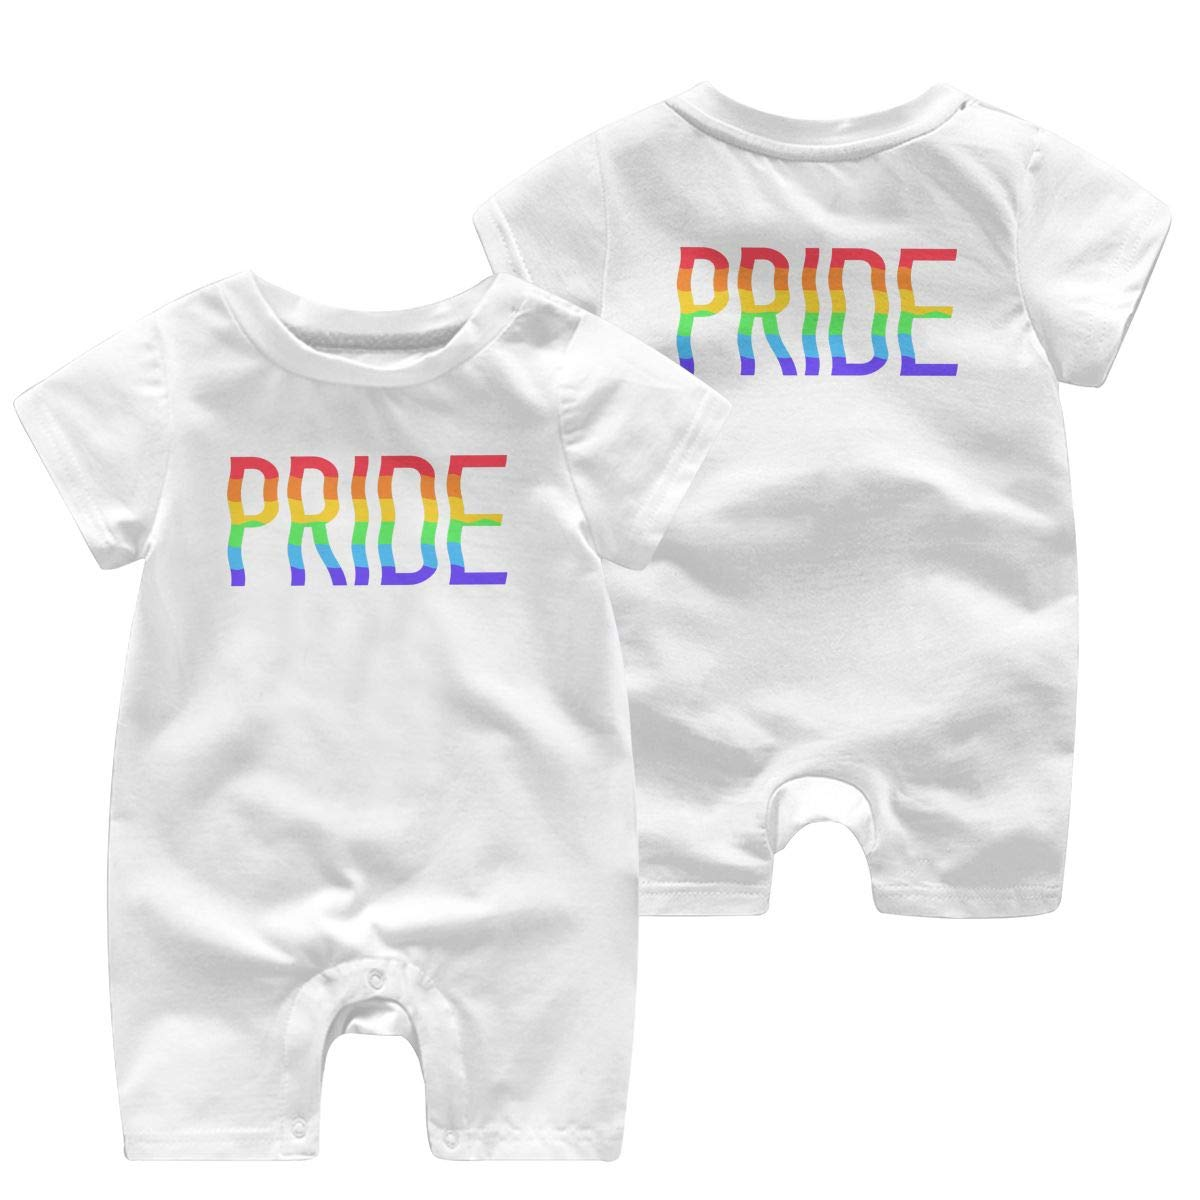 Uycjsamui Pride Romper Short Sleeve Basic Romper Coveralls Cute Double Sides Print Baby Boy//Girl Playsuit Jumpsuits